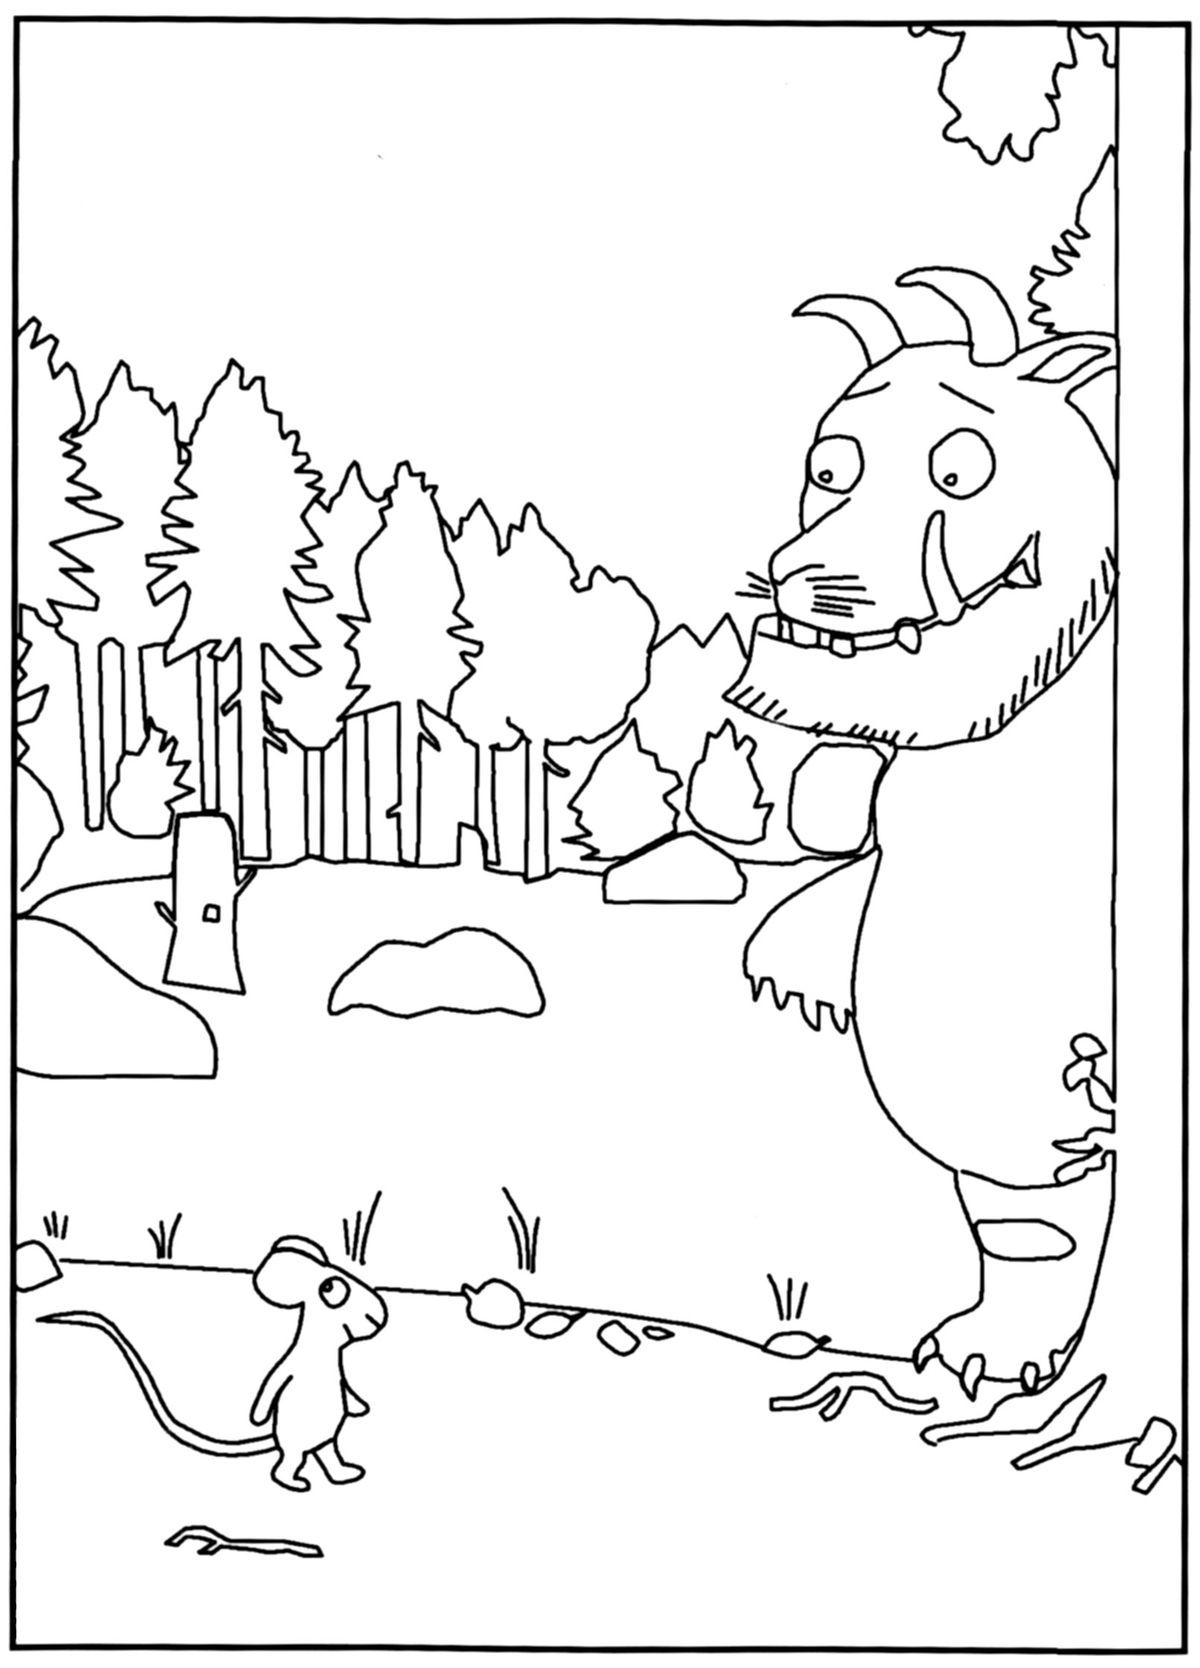 10 Glad Monster Sad Monster Coloring Page   Thousand of ...